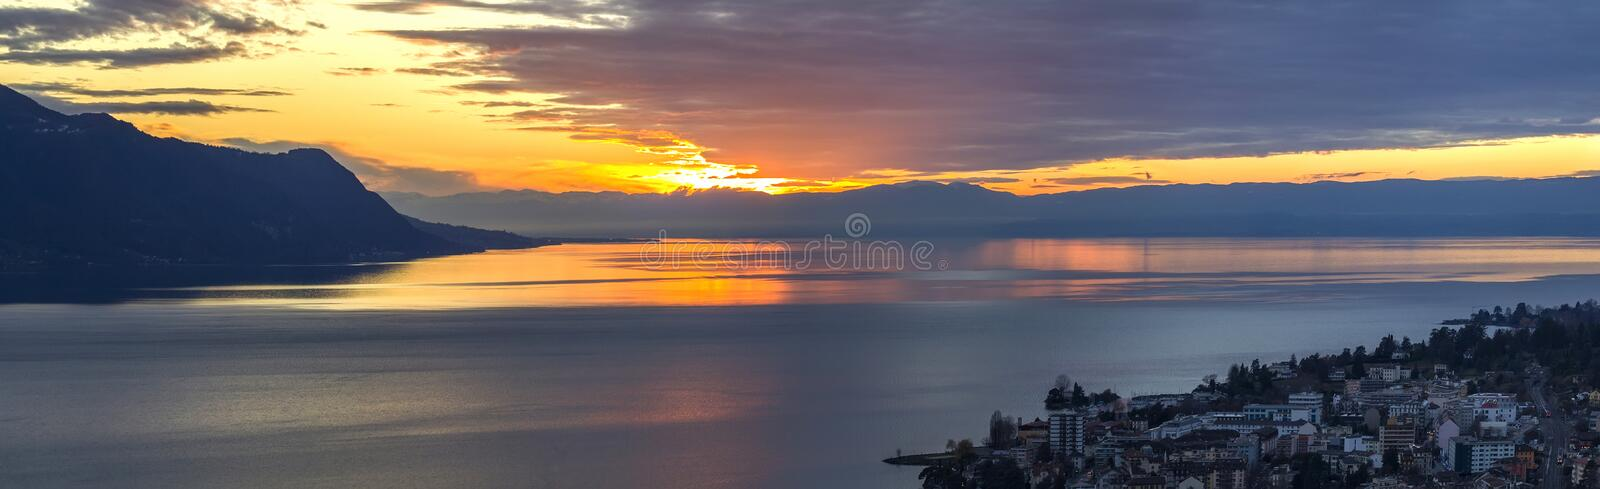 Scenic view of sunset over the Leman lake with yellow sky with clouds and Alps mountains in background, Montreux, Switzerland. Scenic view of sunset over the royalty free stock photo